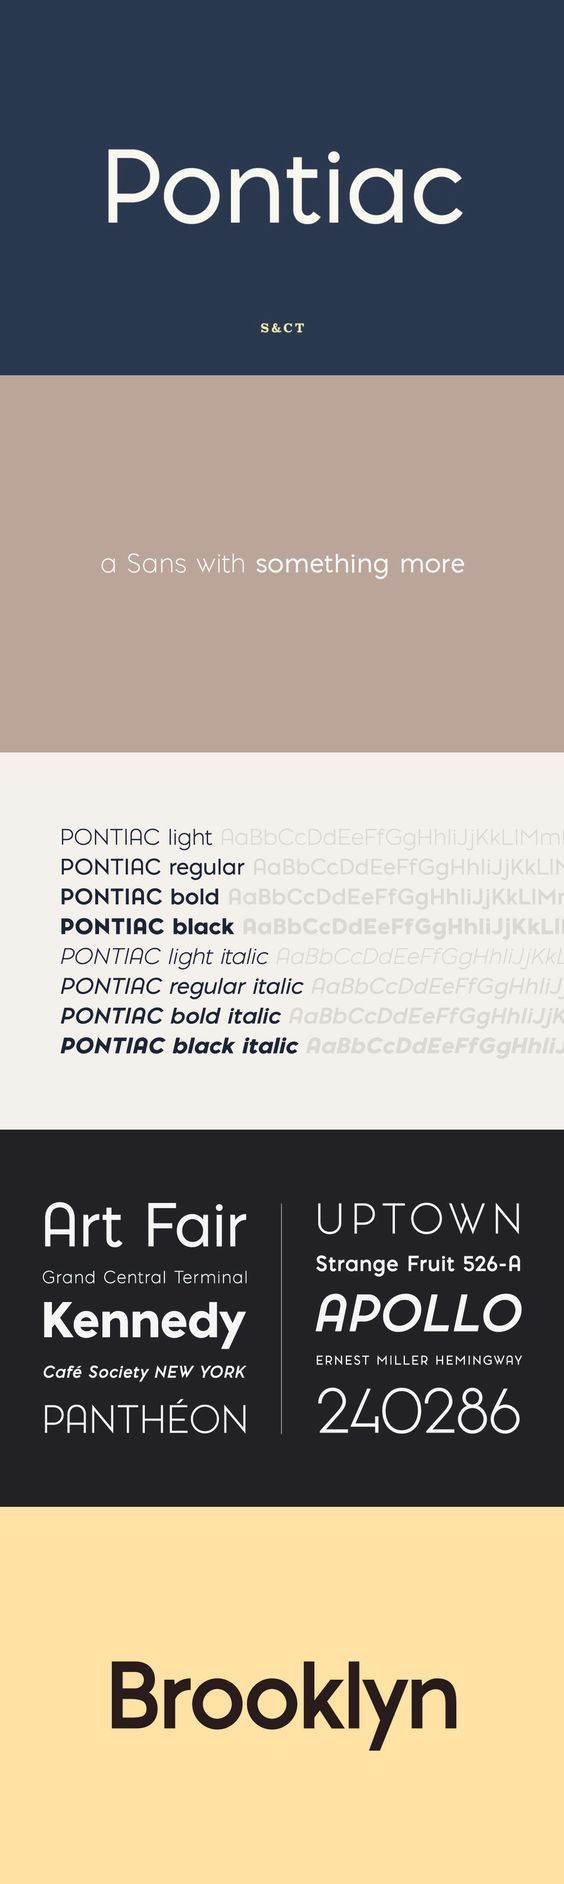 Pontiac is a sans serif OpenType font designed by Fanny Coulez and Julien Saurin in Paris. Somewhere between Akzidenz Grotesk and Neutra, Pontiac is a functional font with something more, something warm, geometric but human, something distinctive, something French finally.